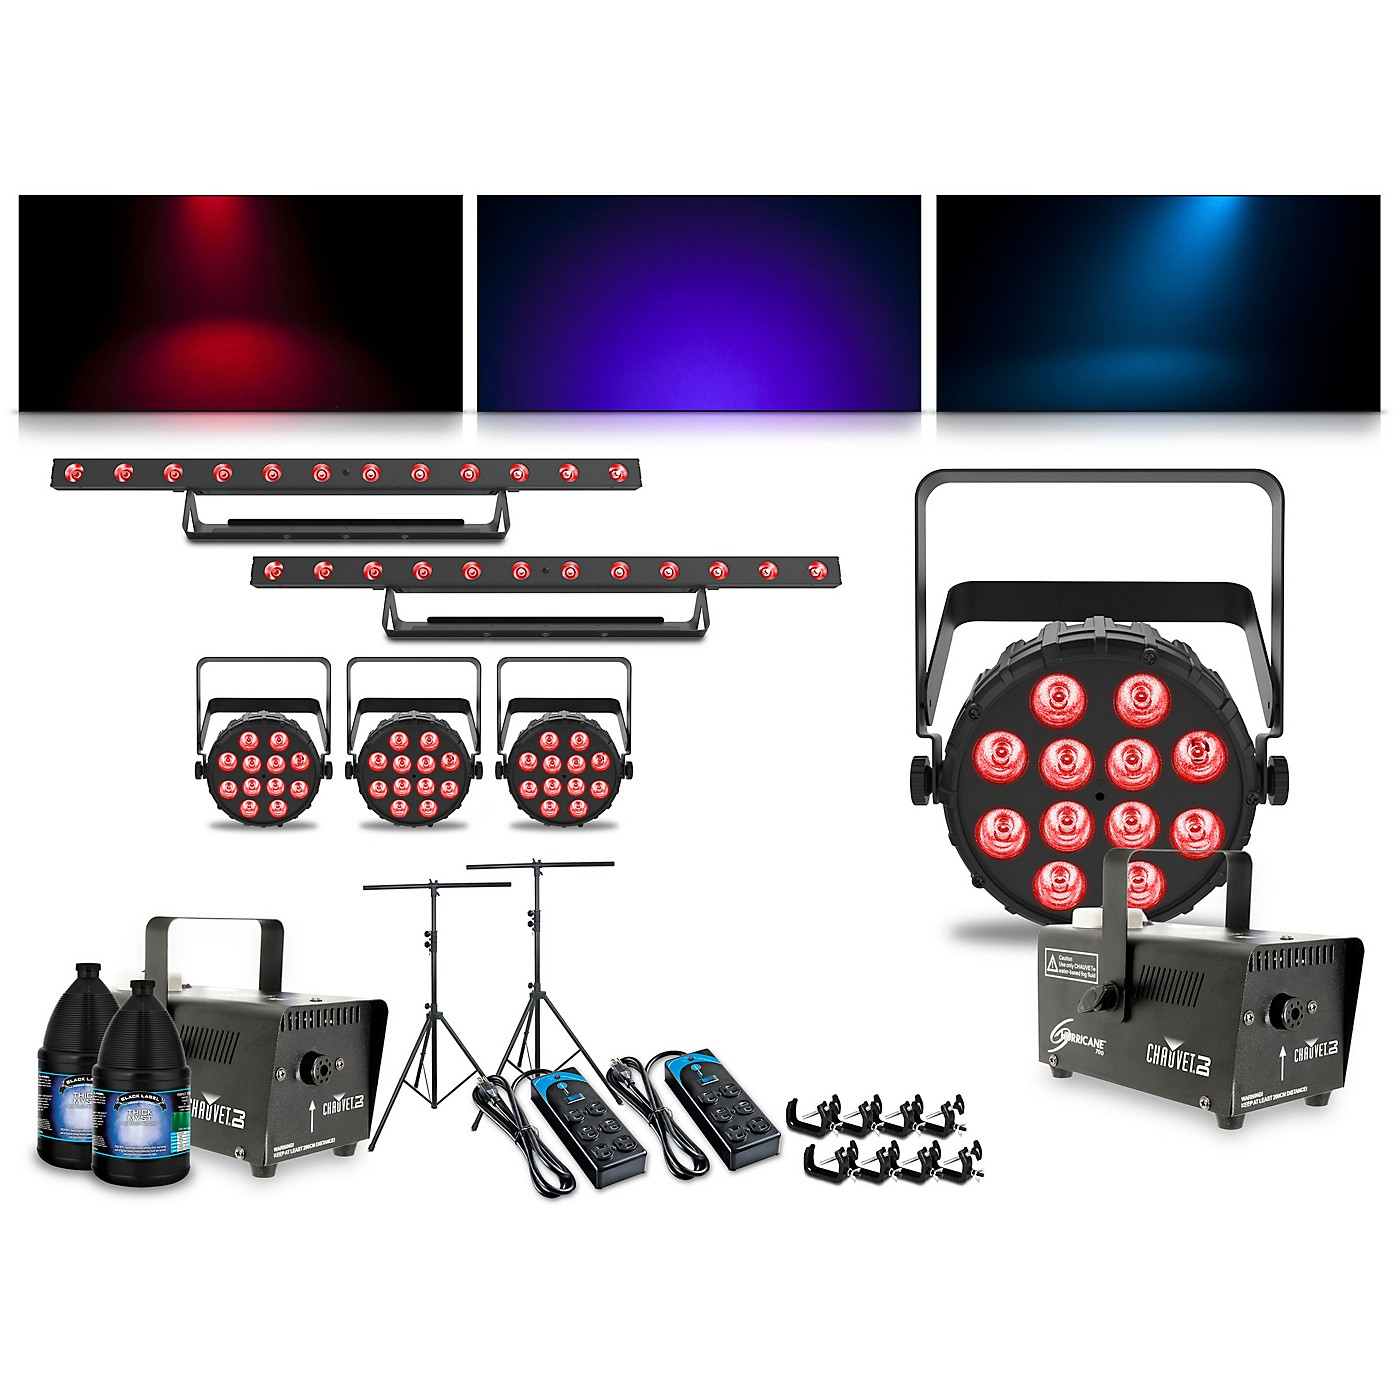 CHAUVET DJ Complete Lighting Package with SlimPAR T12 BT, ColorBAND T3 BT and Hurricane 700 Fog Machine thumbnail